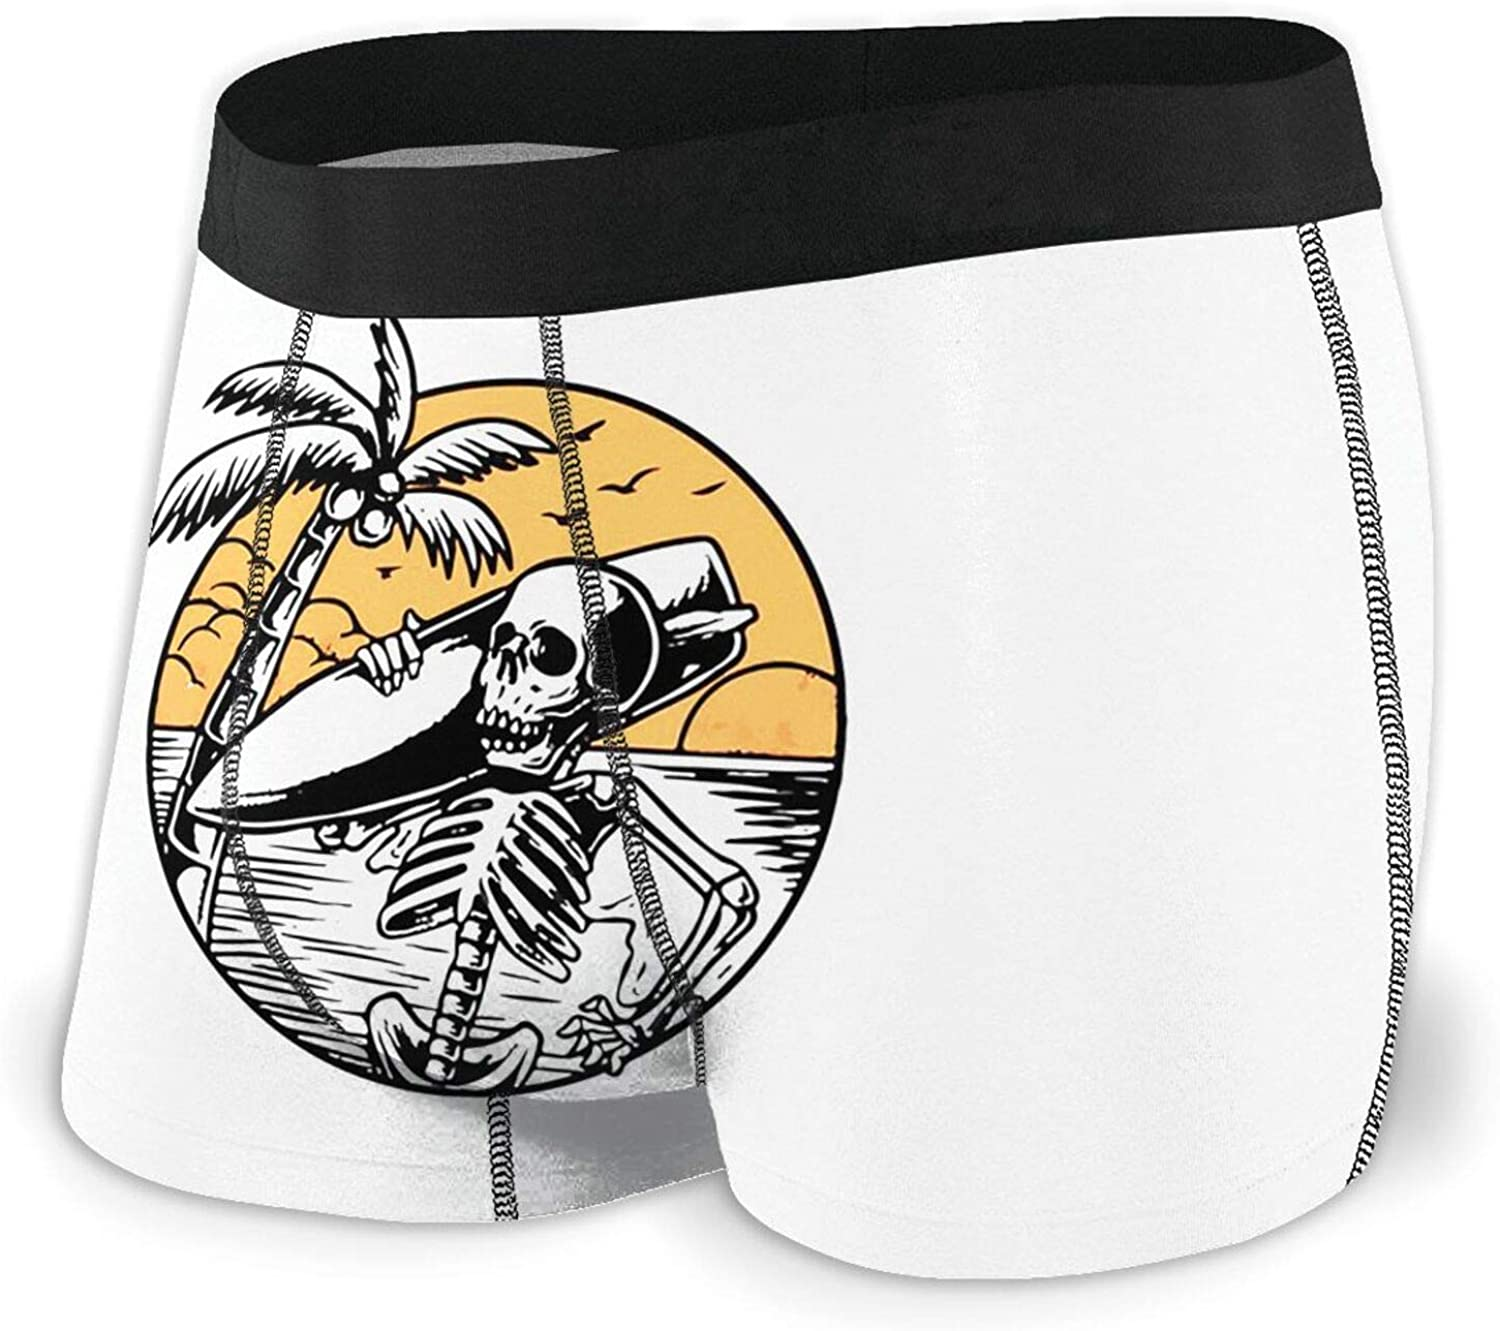 TZT Skeleton Surfer Men's Boxer Briefs Un Breathable Comfortable 2021 OFFicial spring and summer new